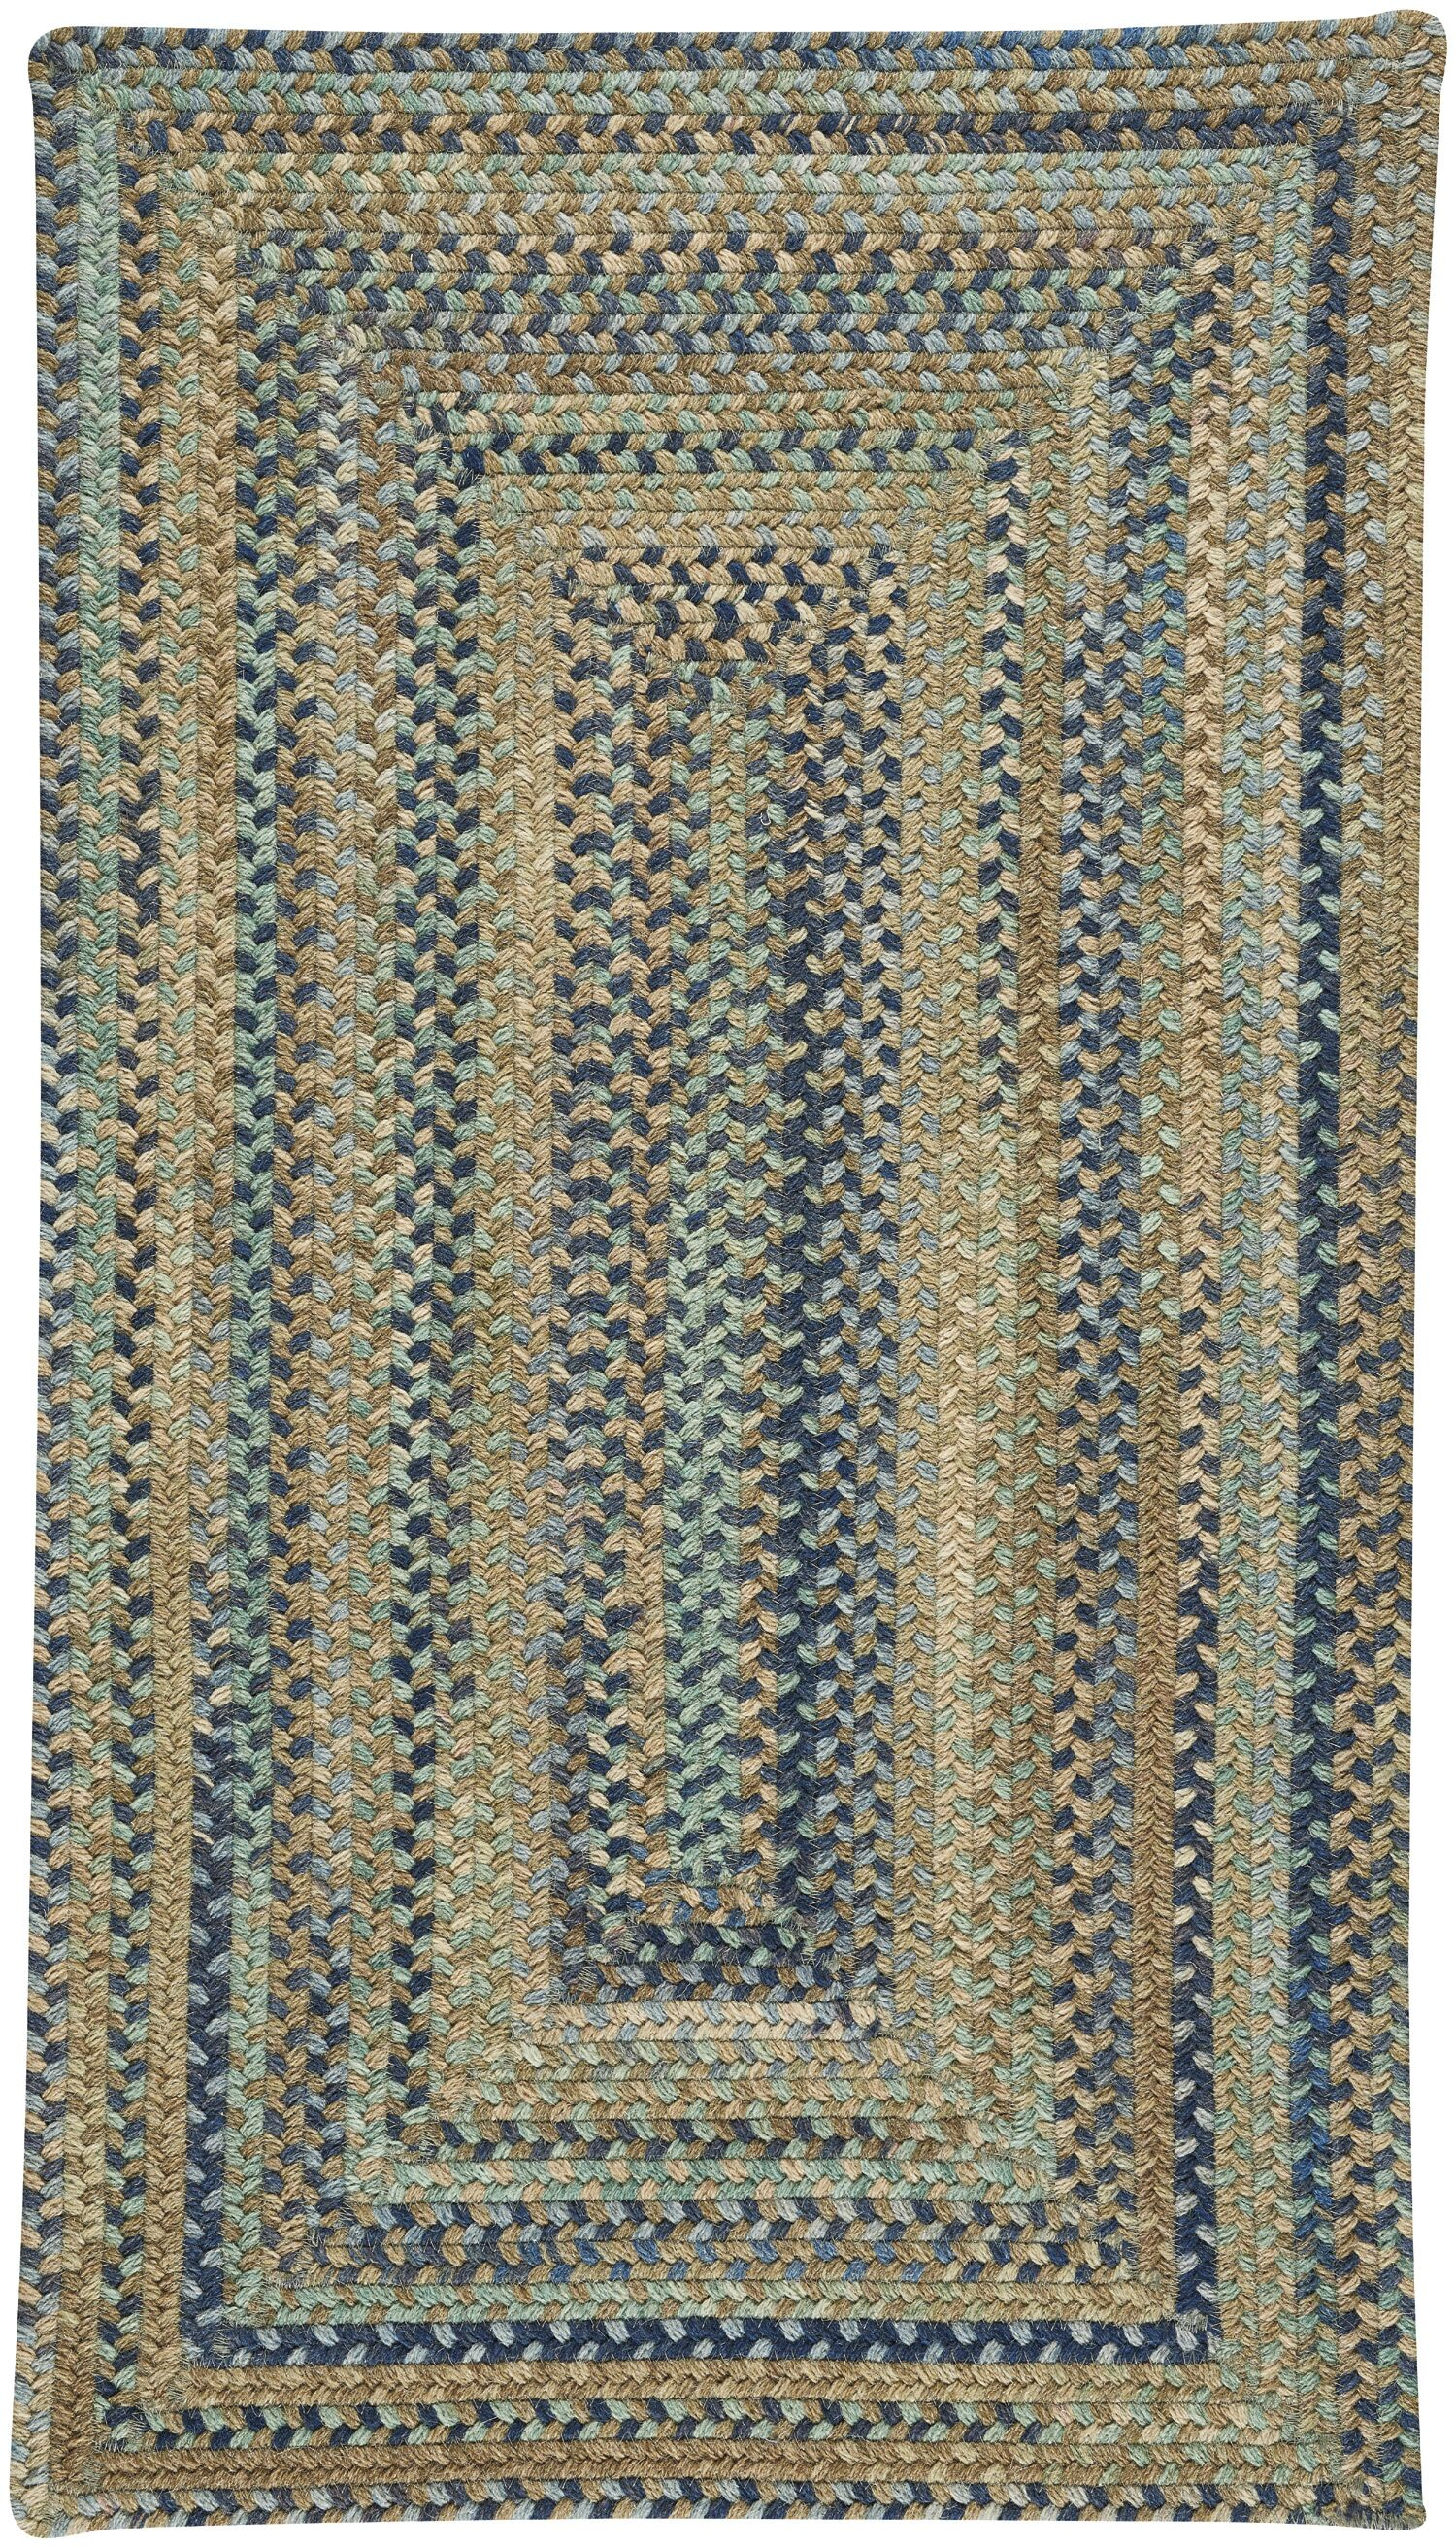 Myrtille Green Area Rug Rug Size: Rectangle 4' x 6'